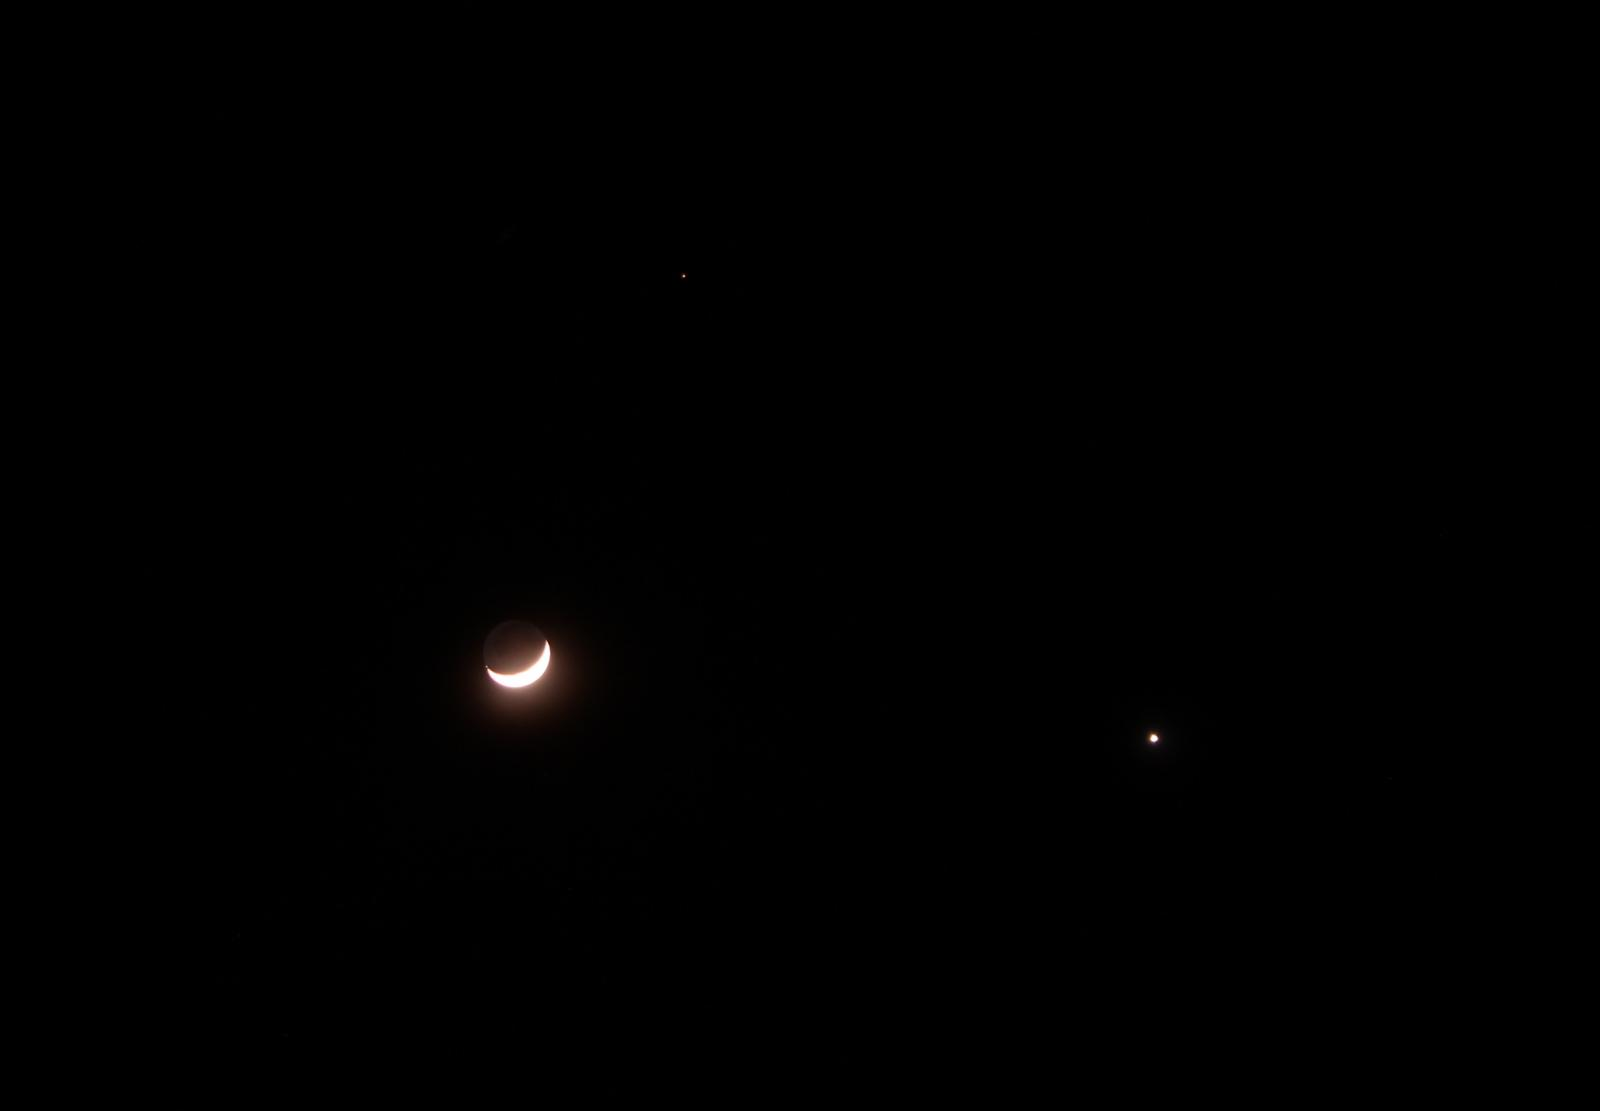 mars venus moon conjunction photos - photo #8